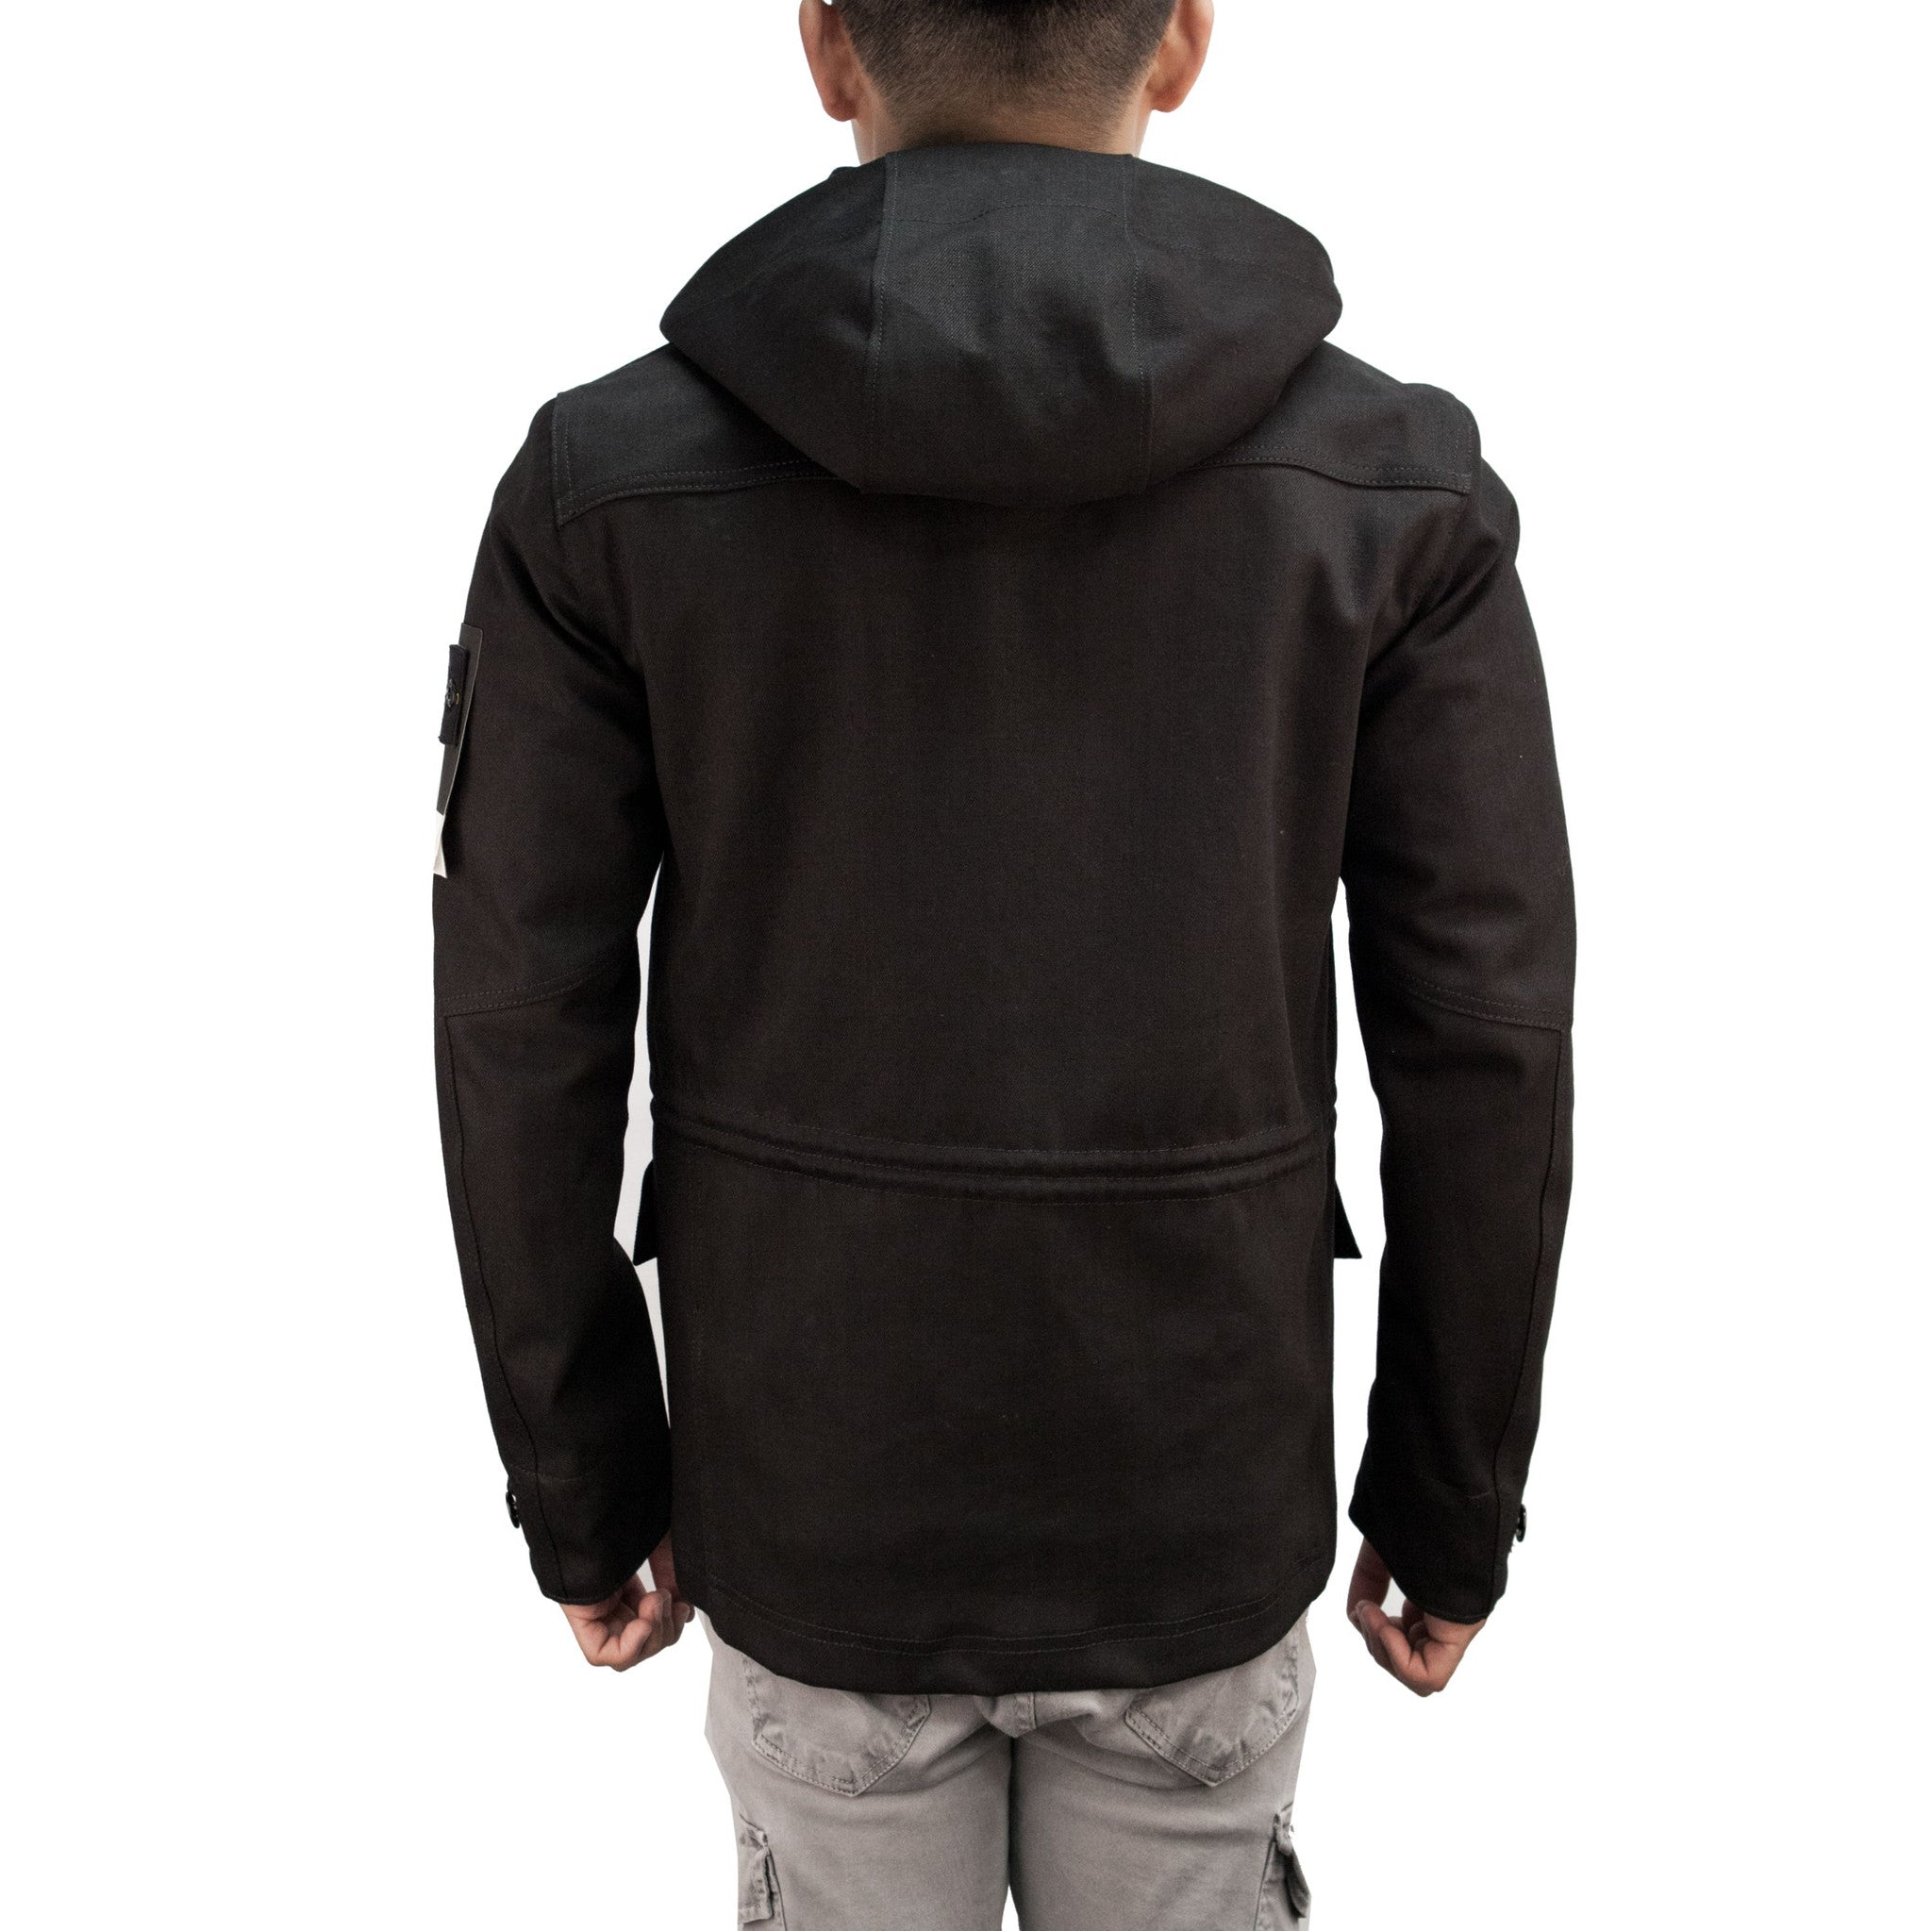 Men's With Detachable Jacket